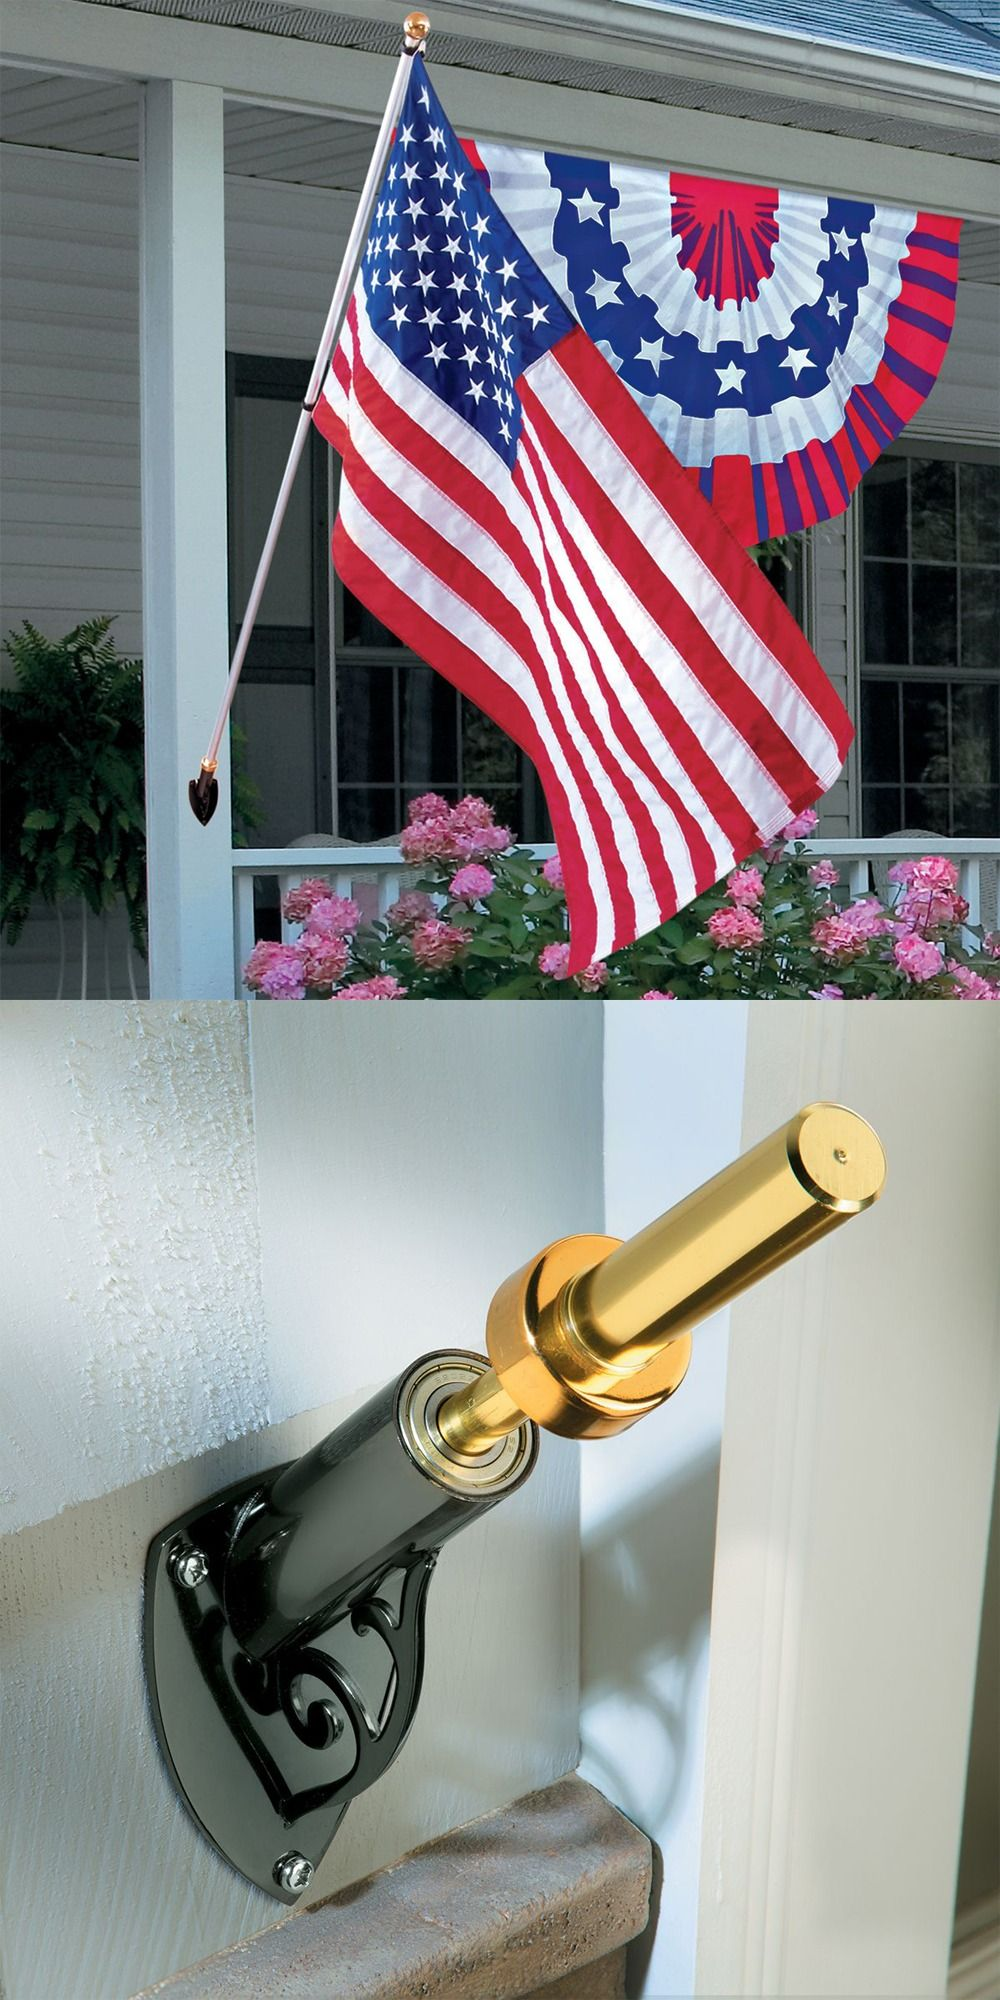 Prevent Your American Flag From Tangling With A House Flag Holder That Rotates On Two Sets Of Sealed Stainless Steel Flag Holder House Flags Flag Pole Holder